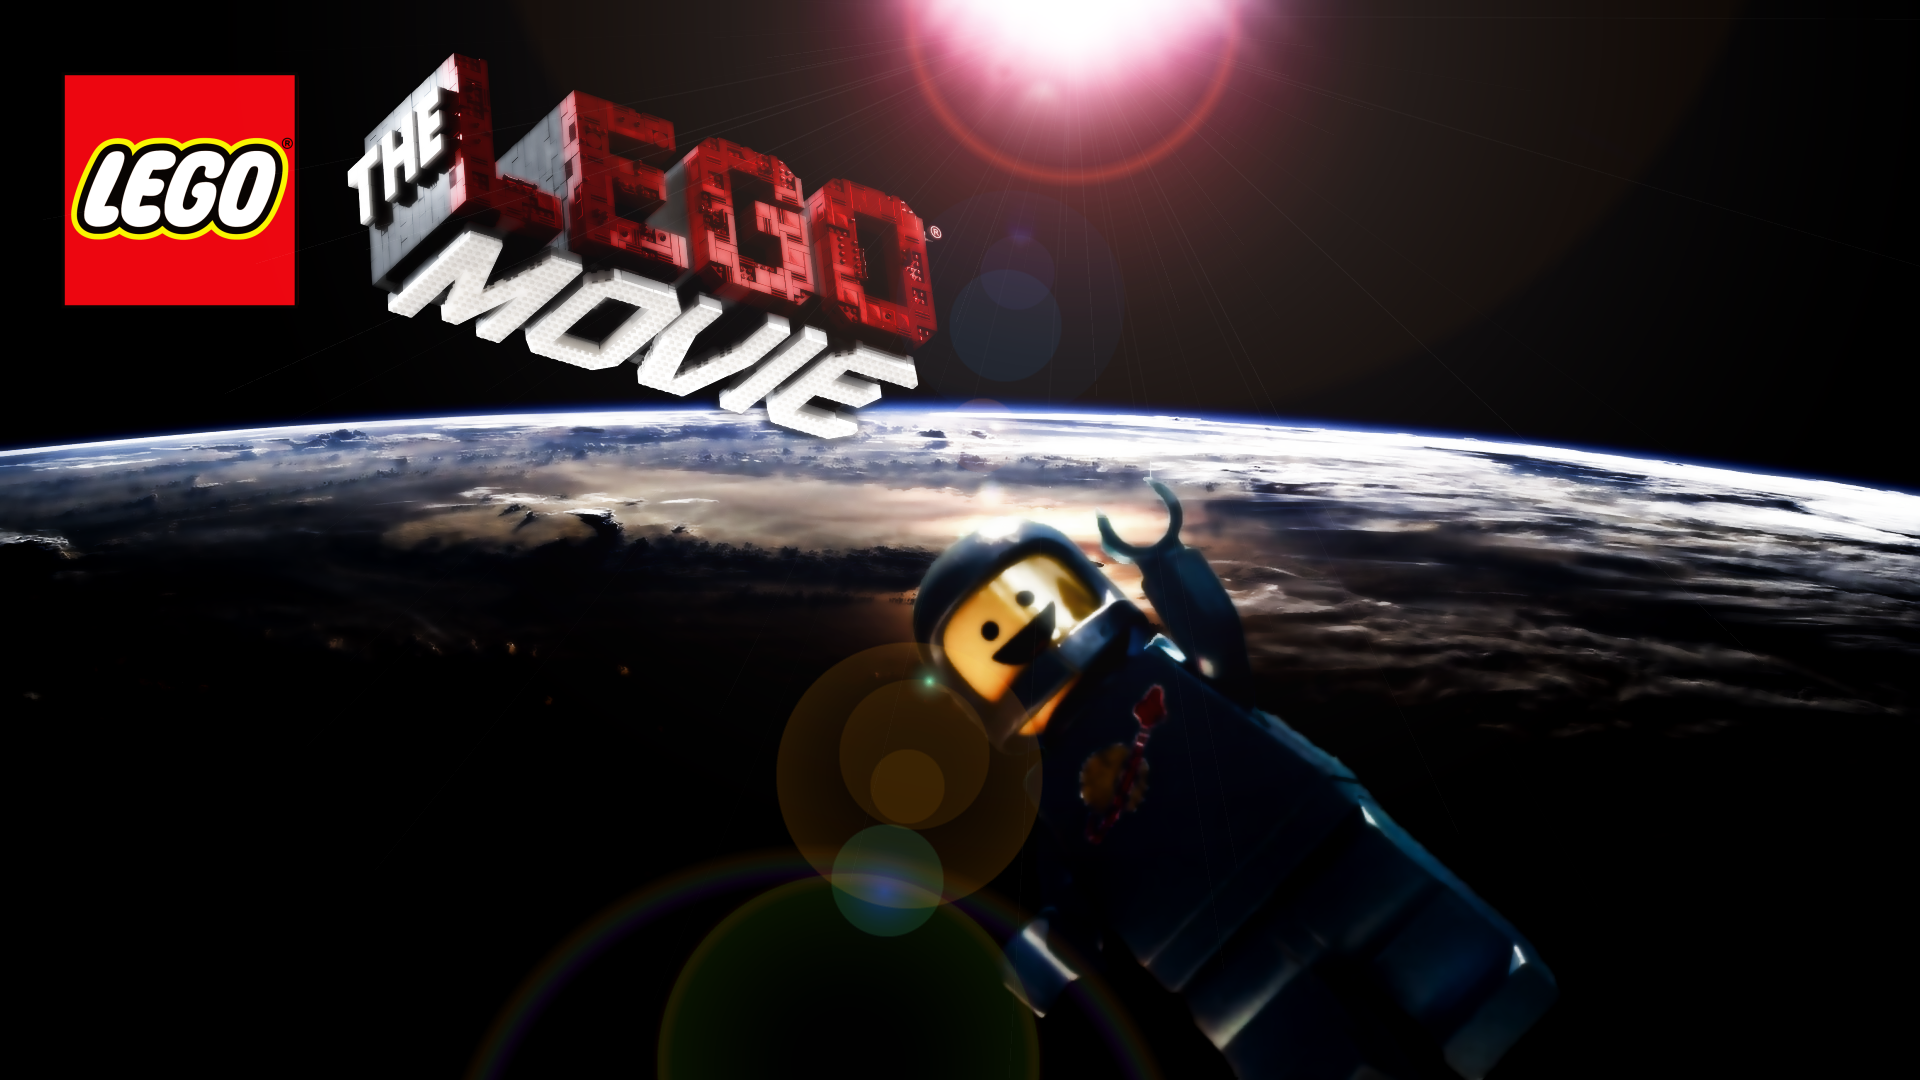 the lego movie full hd wallpaper and background image | 1920x1080